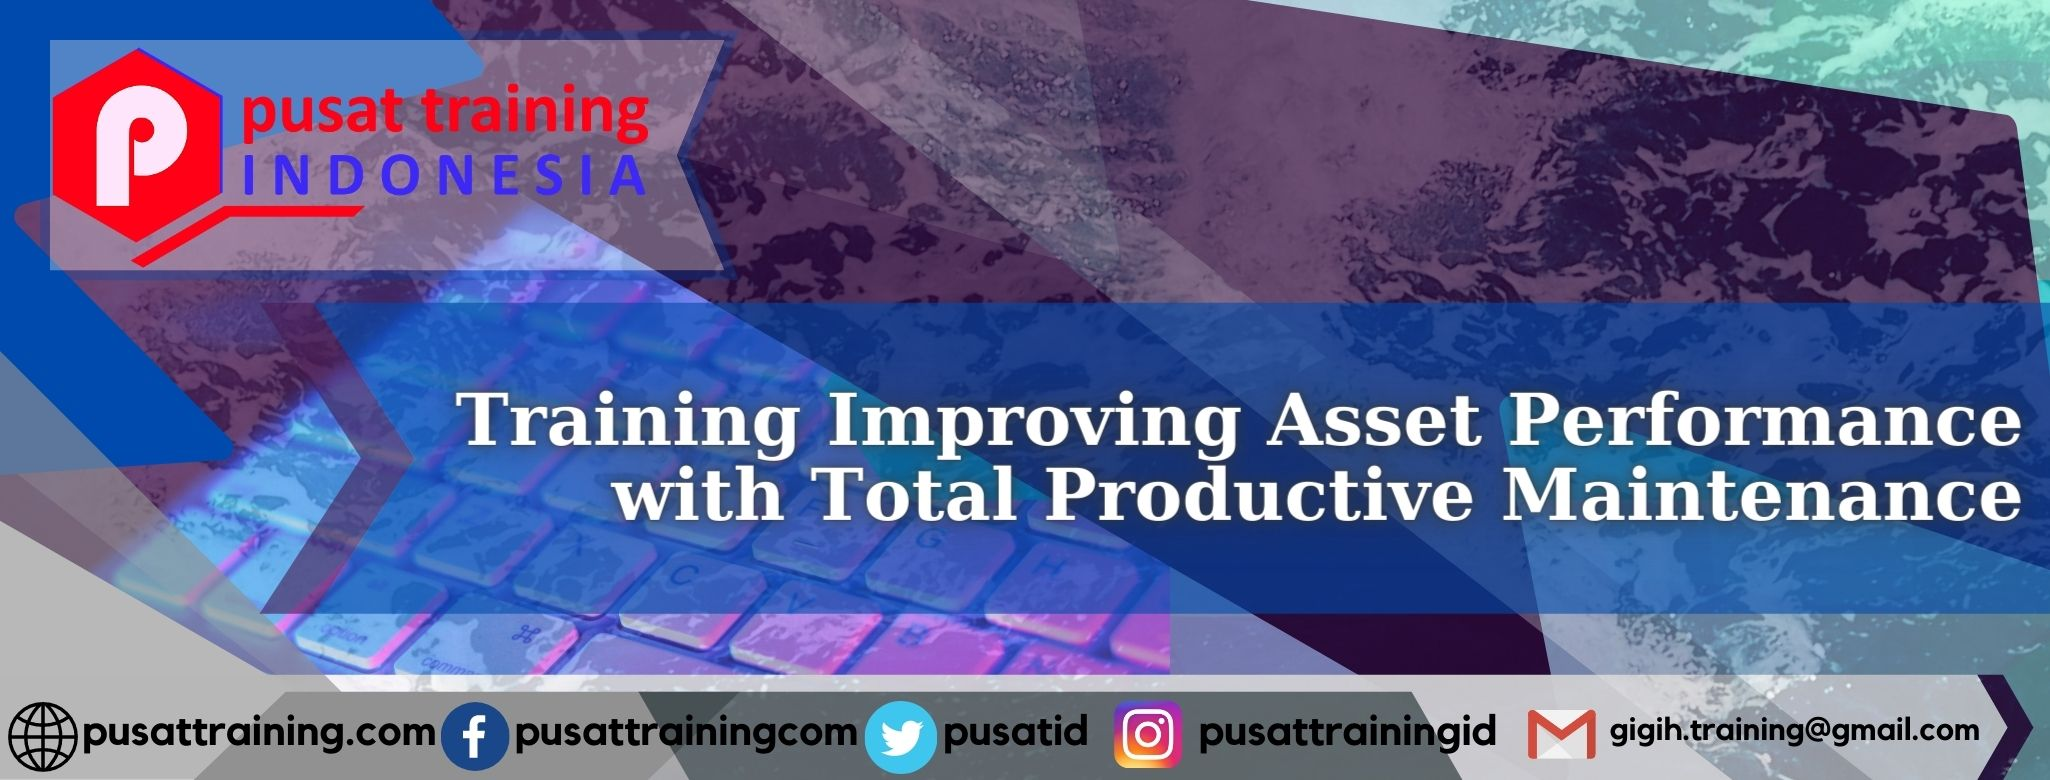 Training-Improving-Asset-Performance-with-Total-Productive-Maintenance